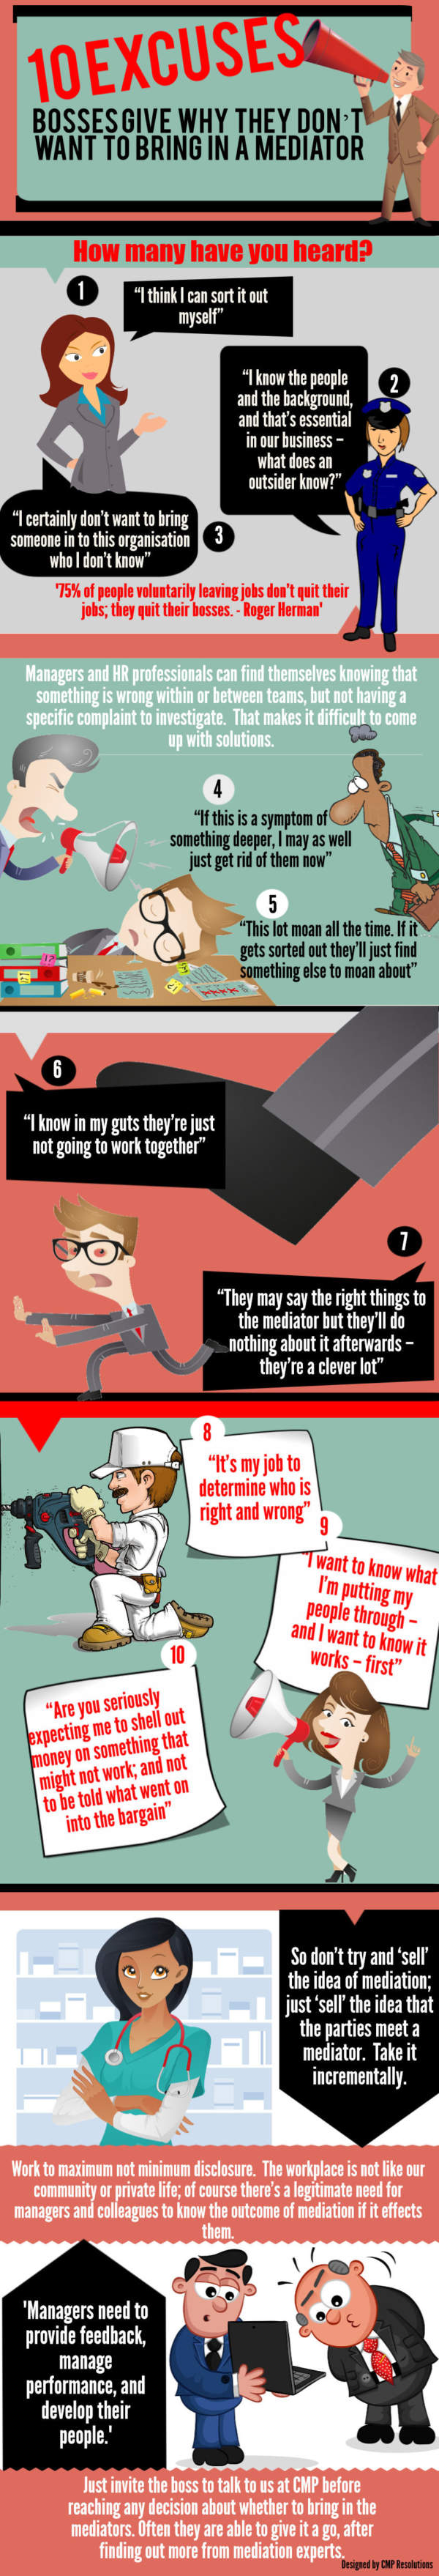 infographic detailing 10 reasons why bosses don't bring in mediators